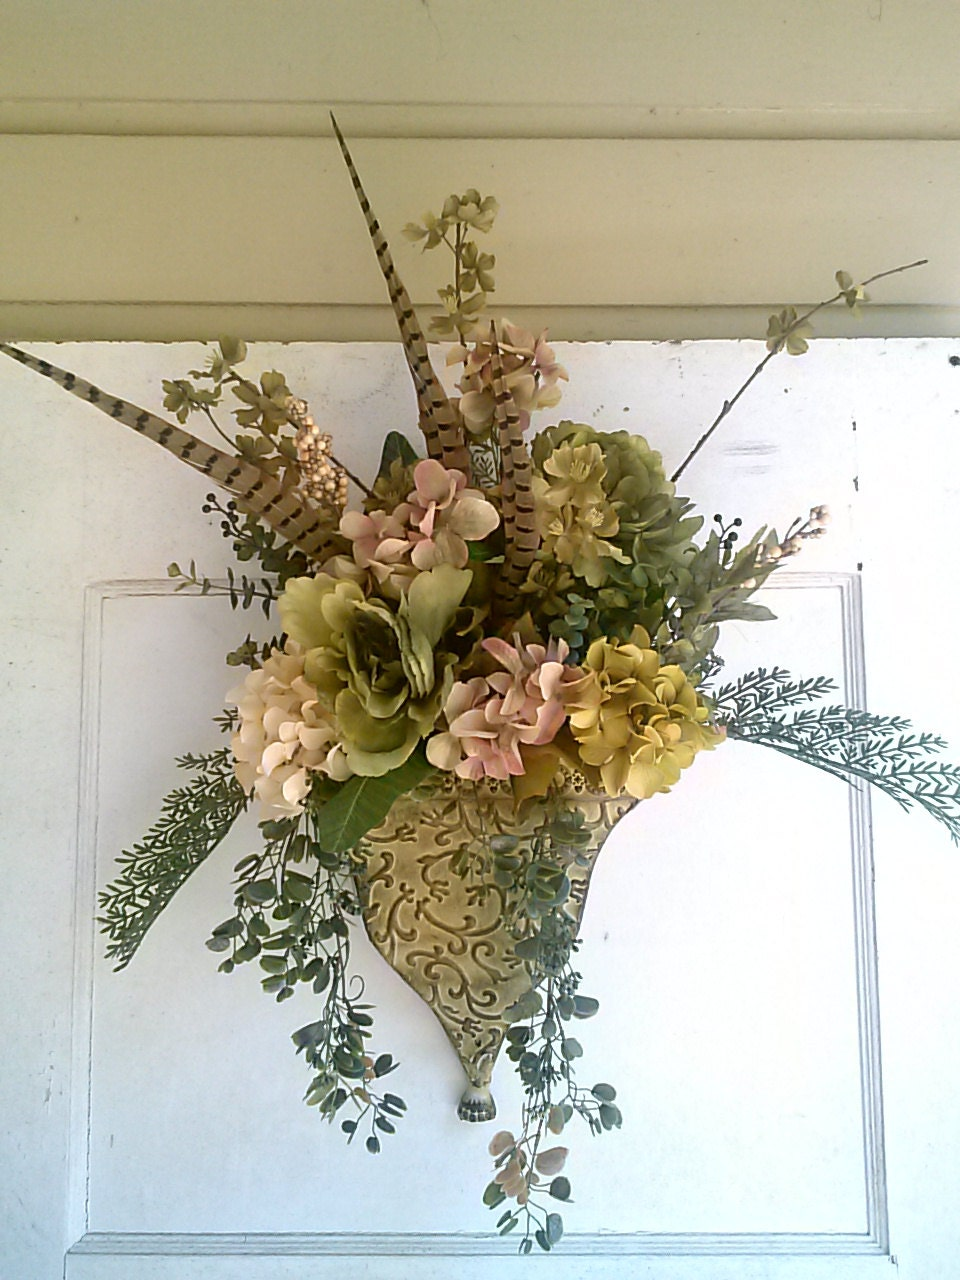 Flower arrangement artificial greenery floral wall hanging